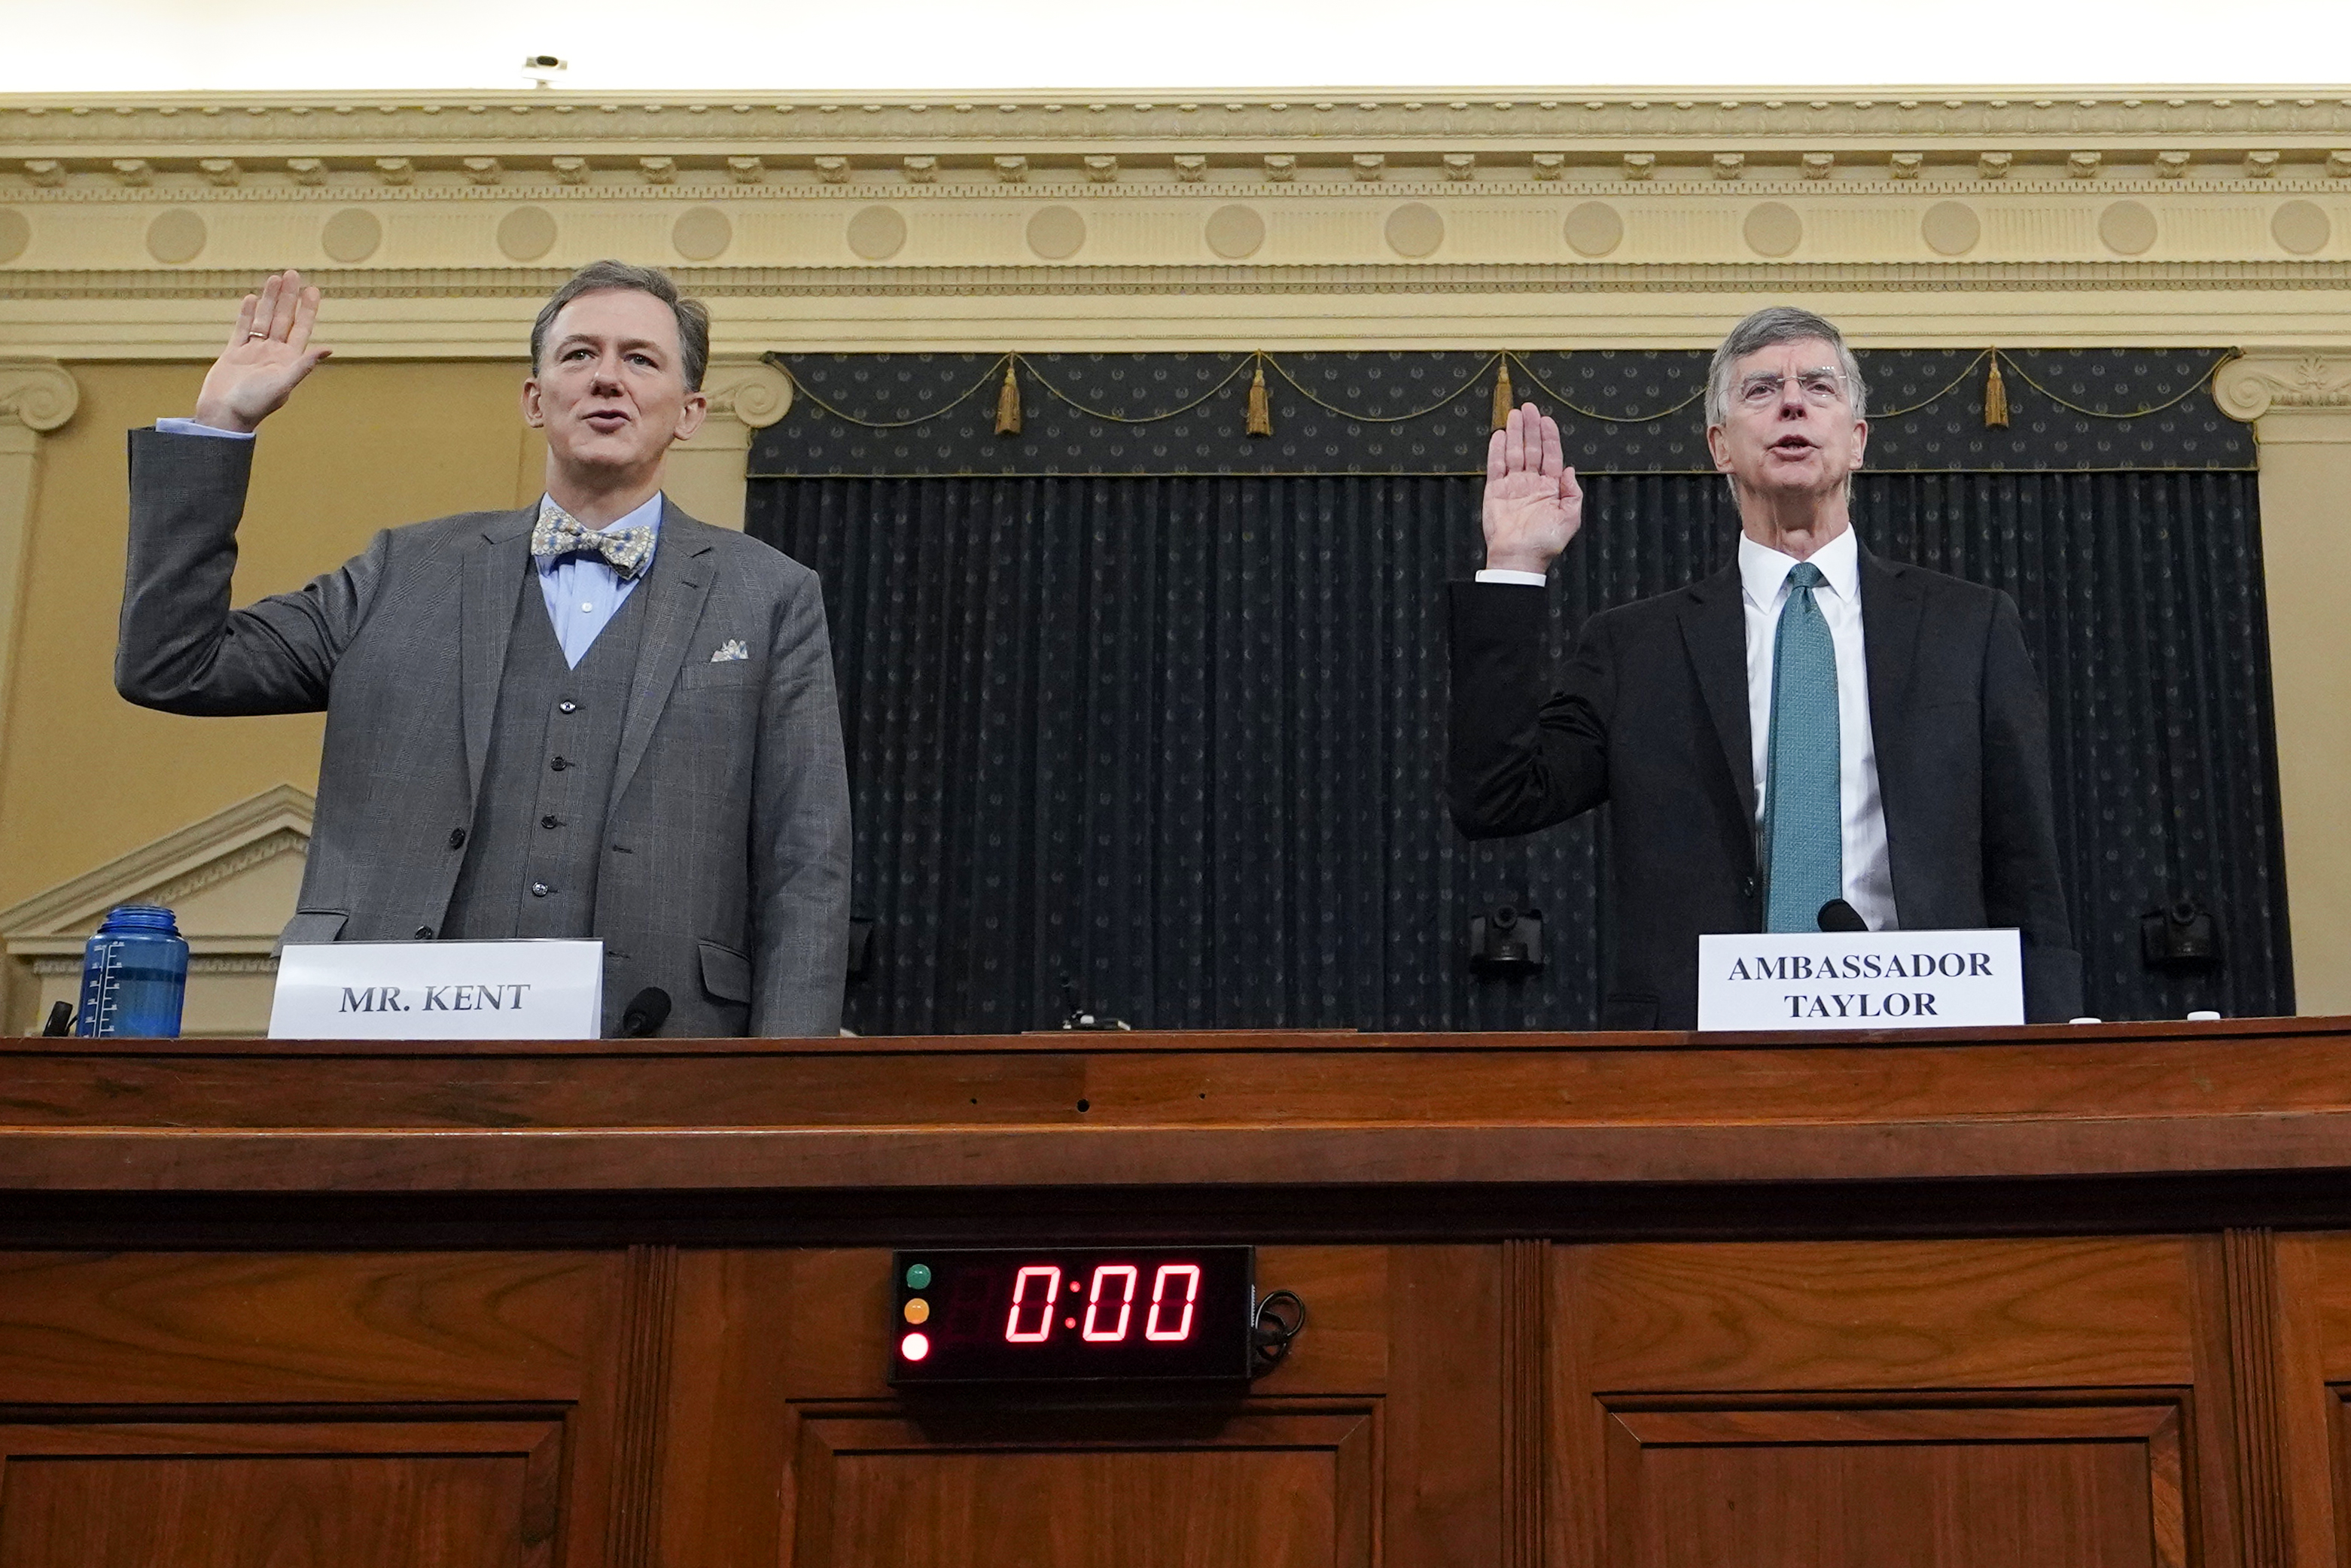 Deputy Assistant Secretary for European and Eurasian Affairs George P. Kent (left) and top U.S. diplomat in Ukraine William B. Taylor Jr.